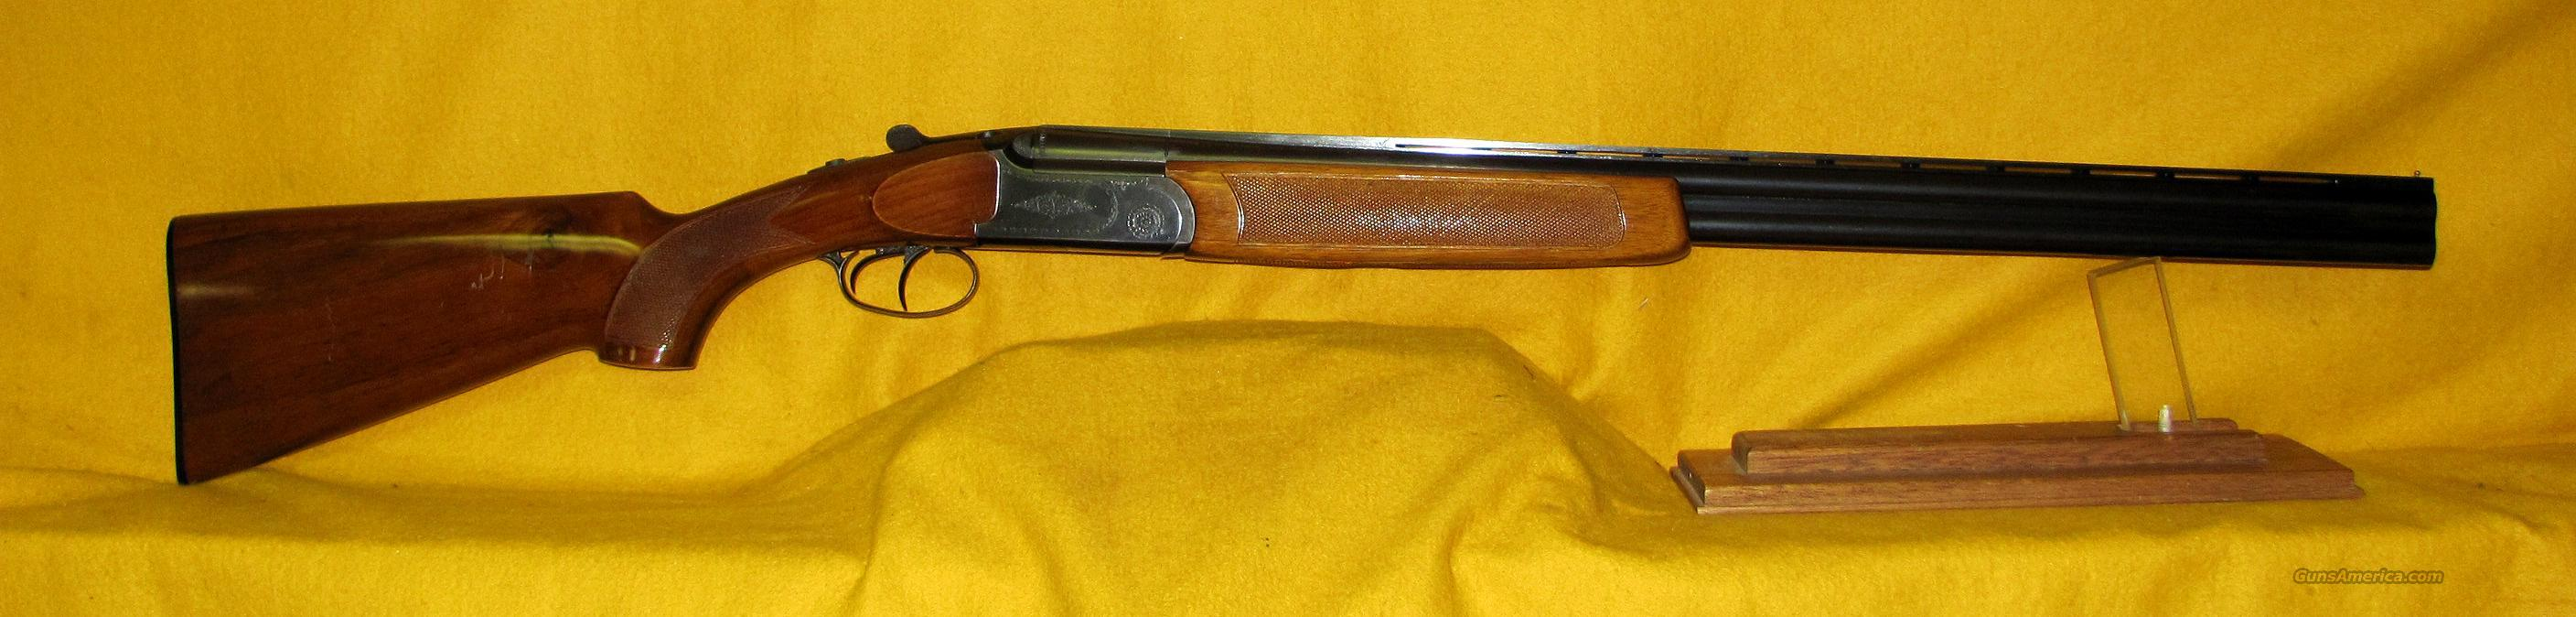 "CHARLES DALY FIELD III O/U 20GA 26""BBL  Guns > Shotguns > Charles Daly Shotguns > Over/Under"